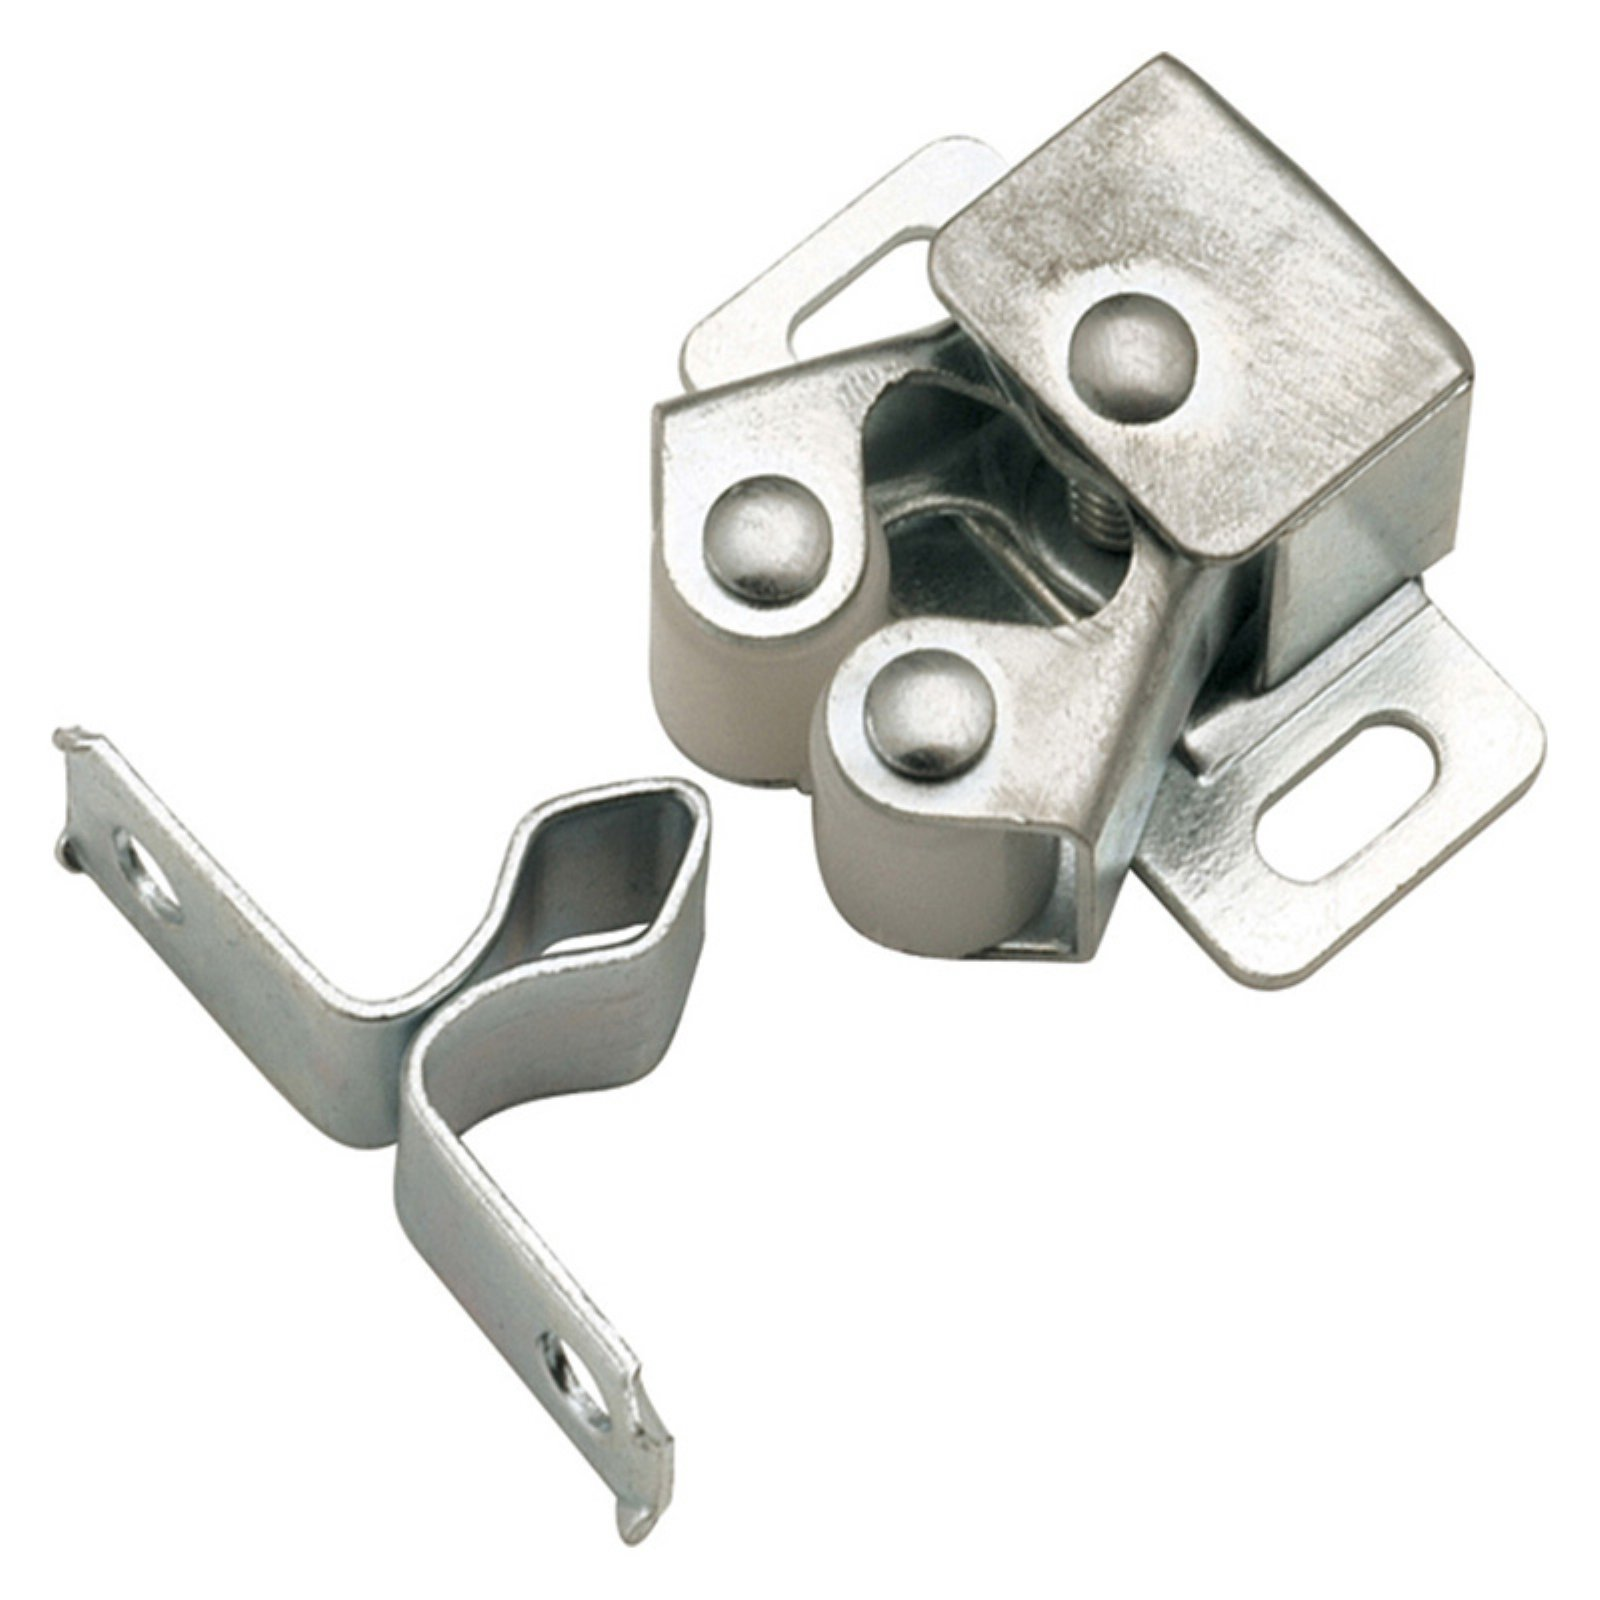 Hickory Hardware 1.31 in. Cabinet Catch - Set of 2